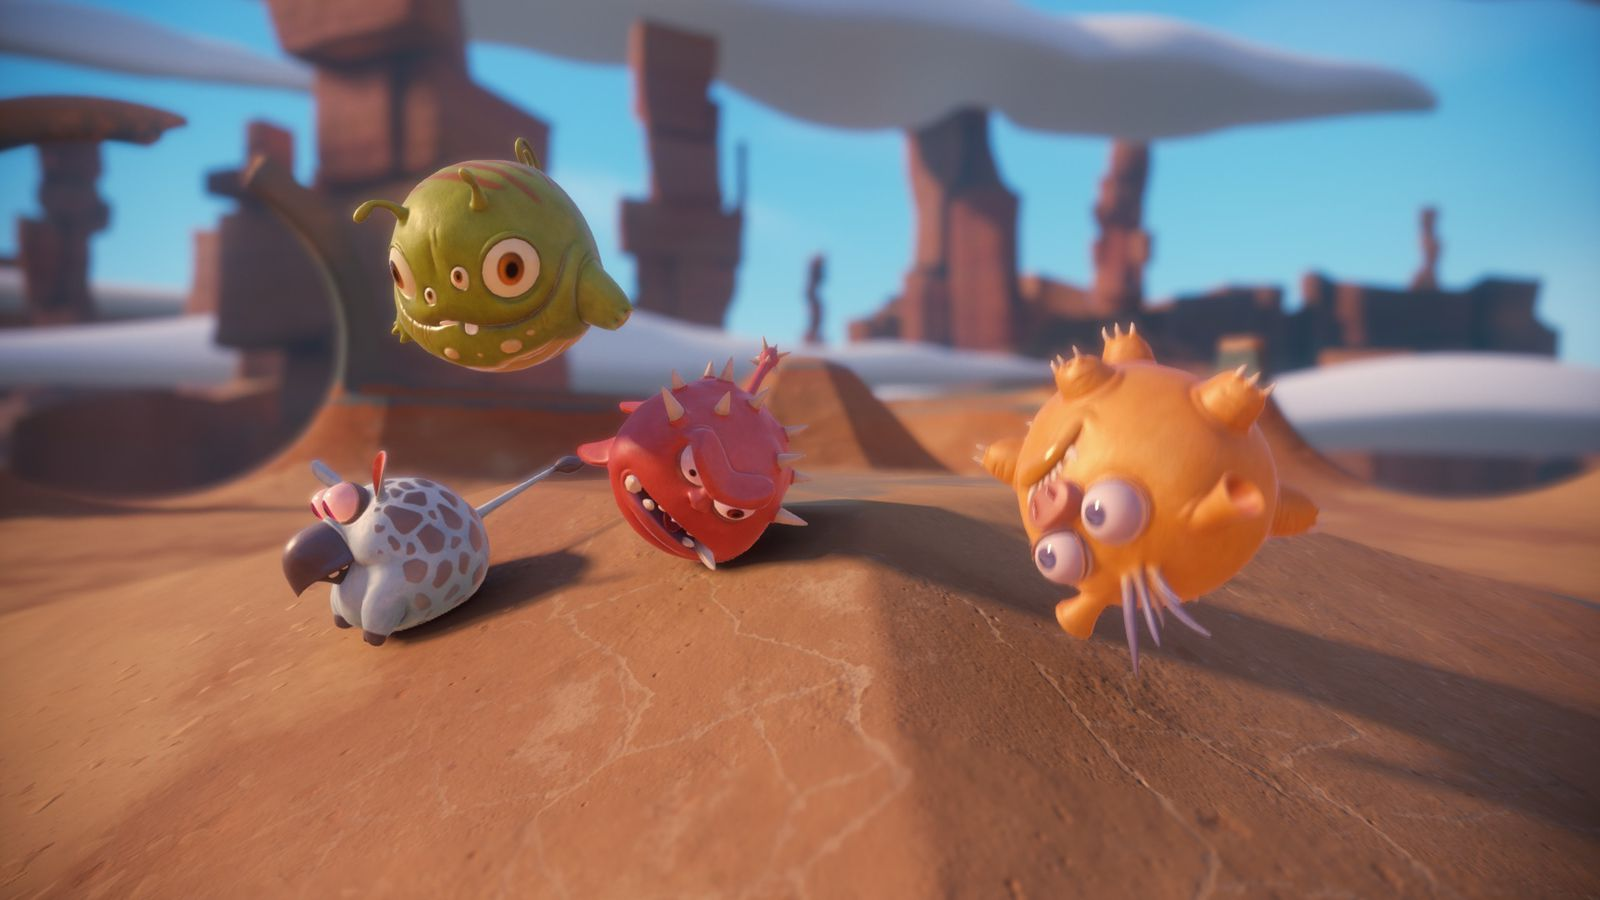 Squishy survival 9 - Deformers Is A Squishy New Game From The Creators Of The Order 1886 The Verge